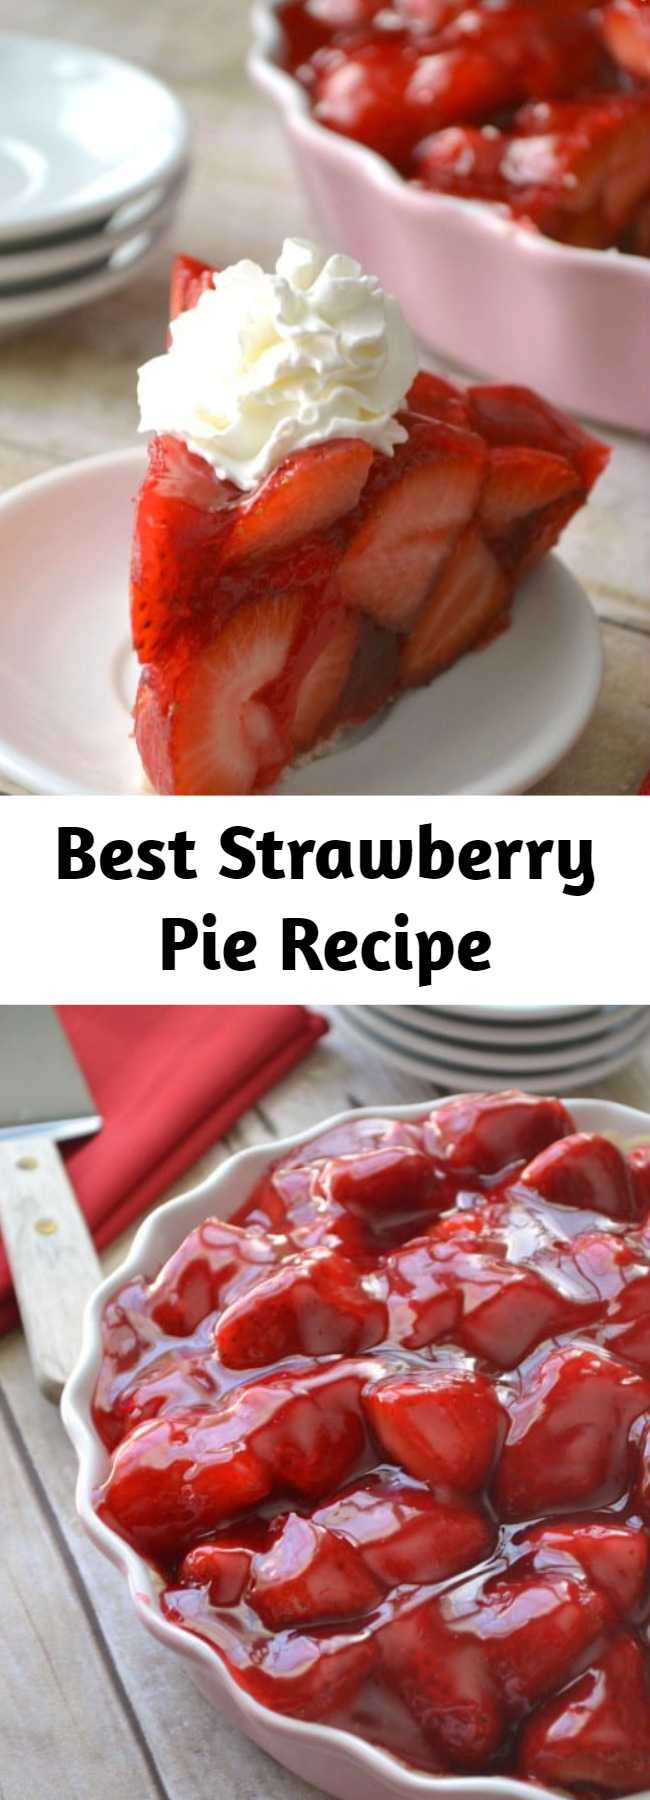 Best Strawberry Pie Recipe - This Strawberry Pie has fresh strawberries mounded high in a rich, buttery crust. A little (or big) slice of delicious. The perfect summer dessert and my favorite strawberry pie!